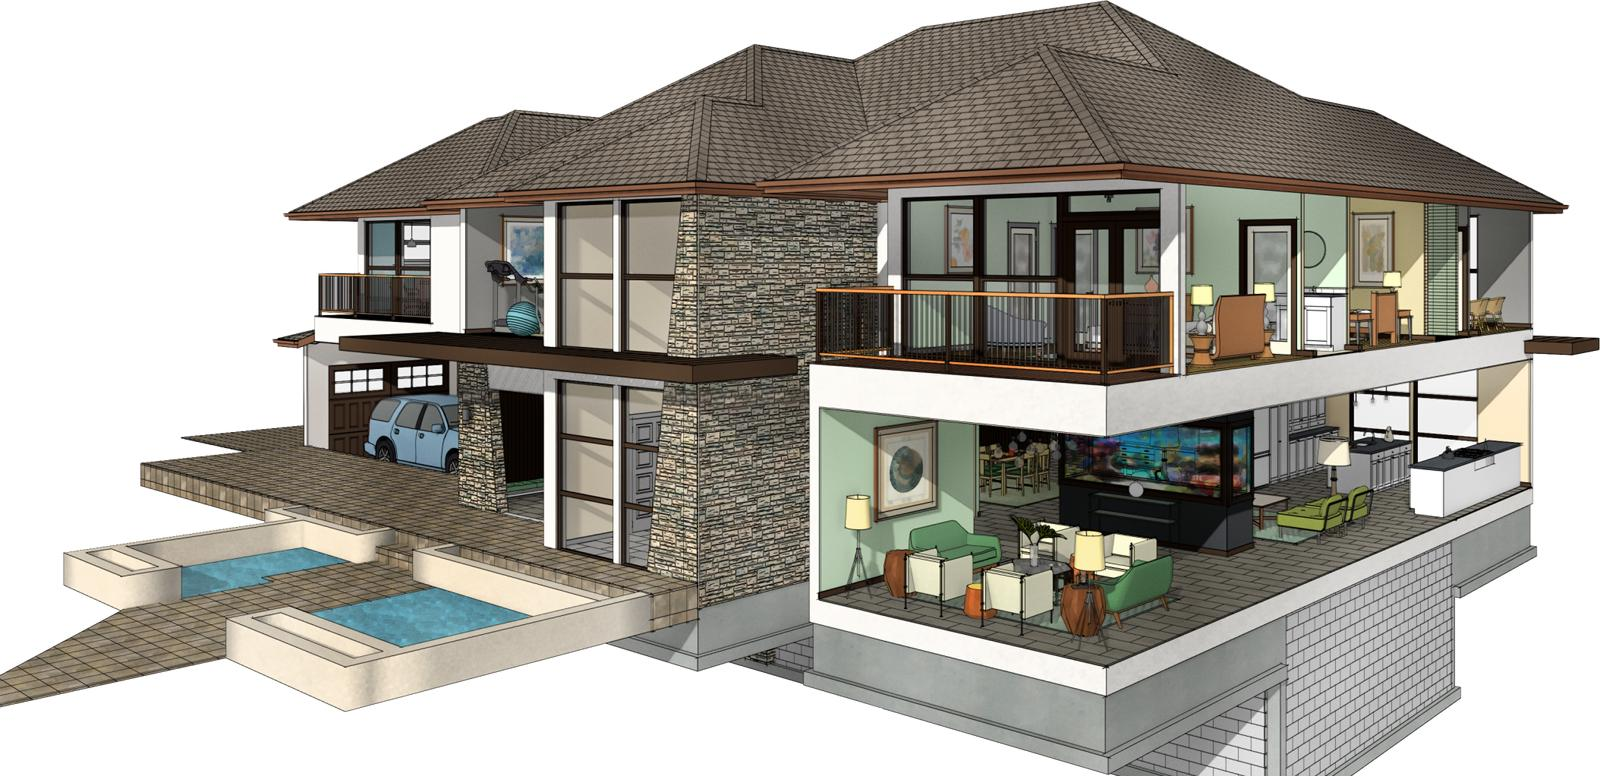 Remodeling software home designer House designs and floor plans software